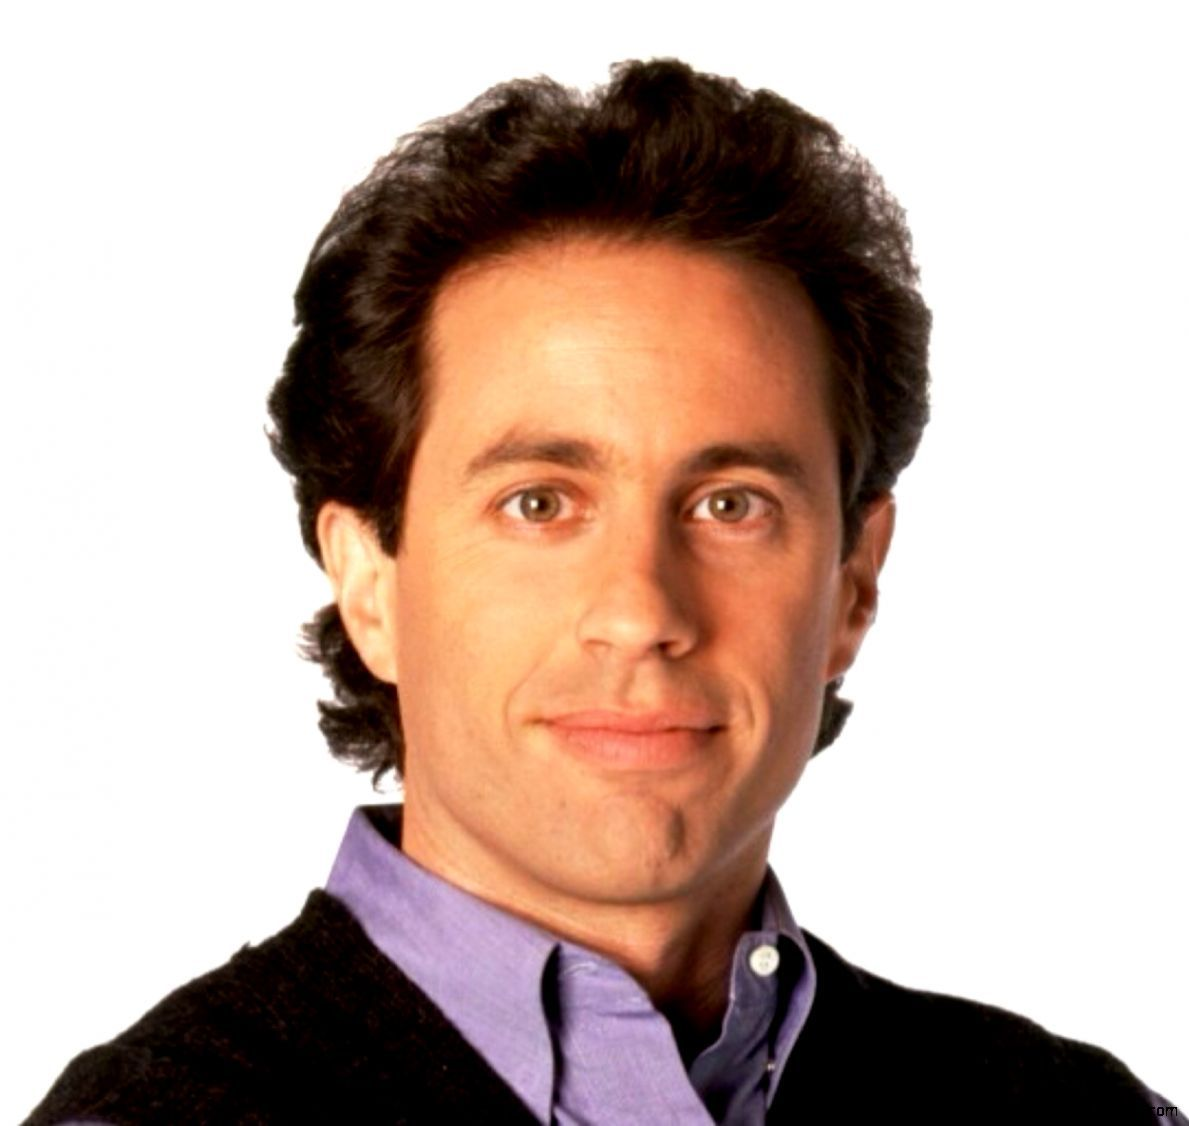 Jerry Seinfield Awesome look